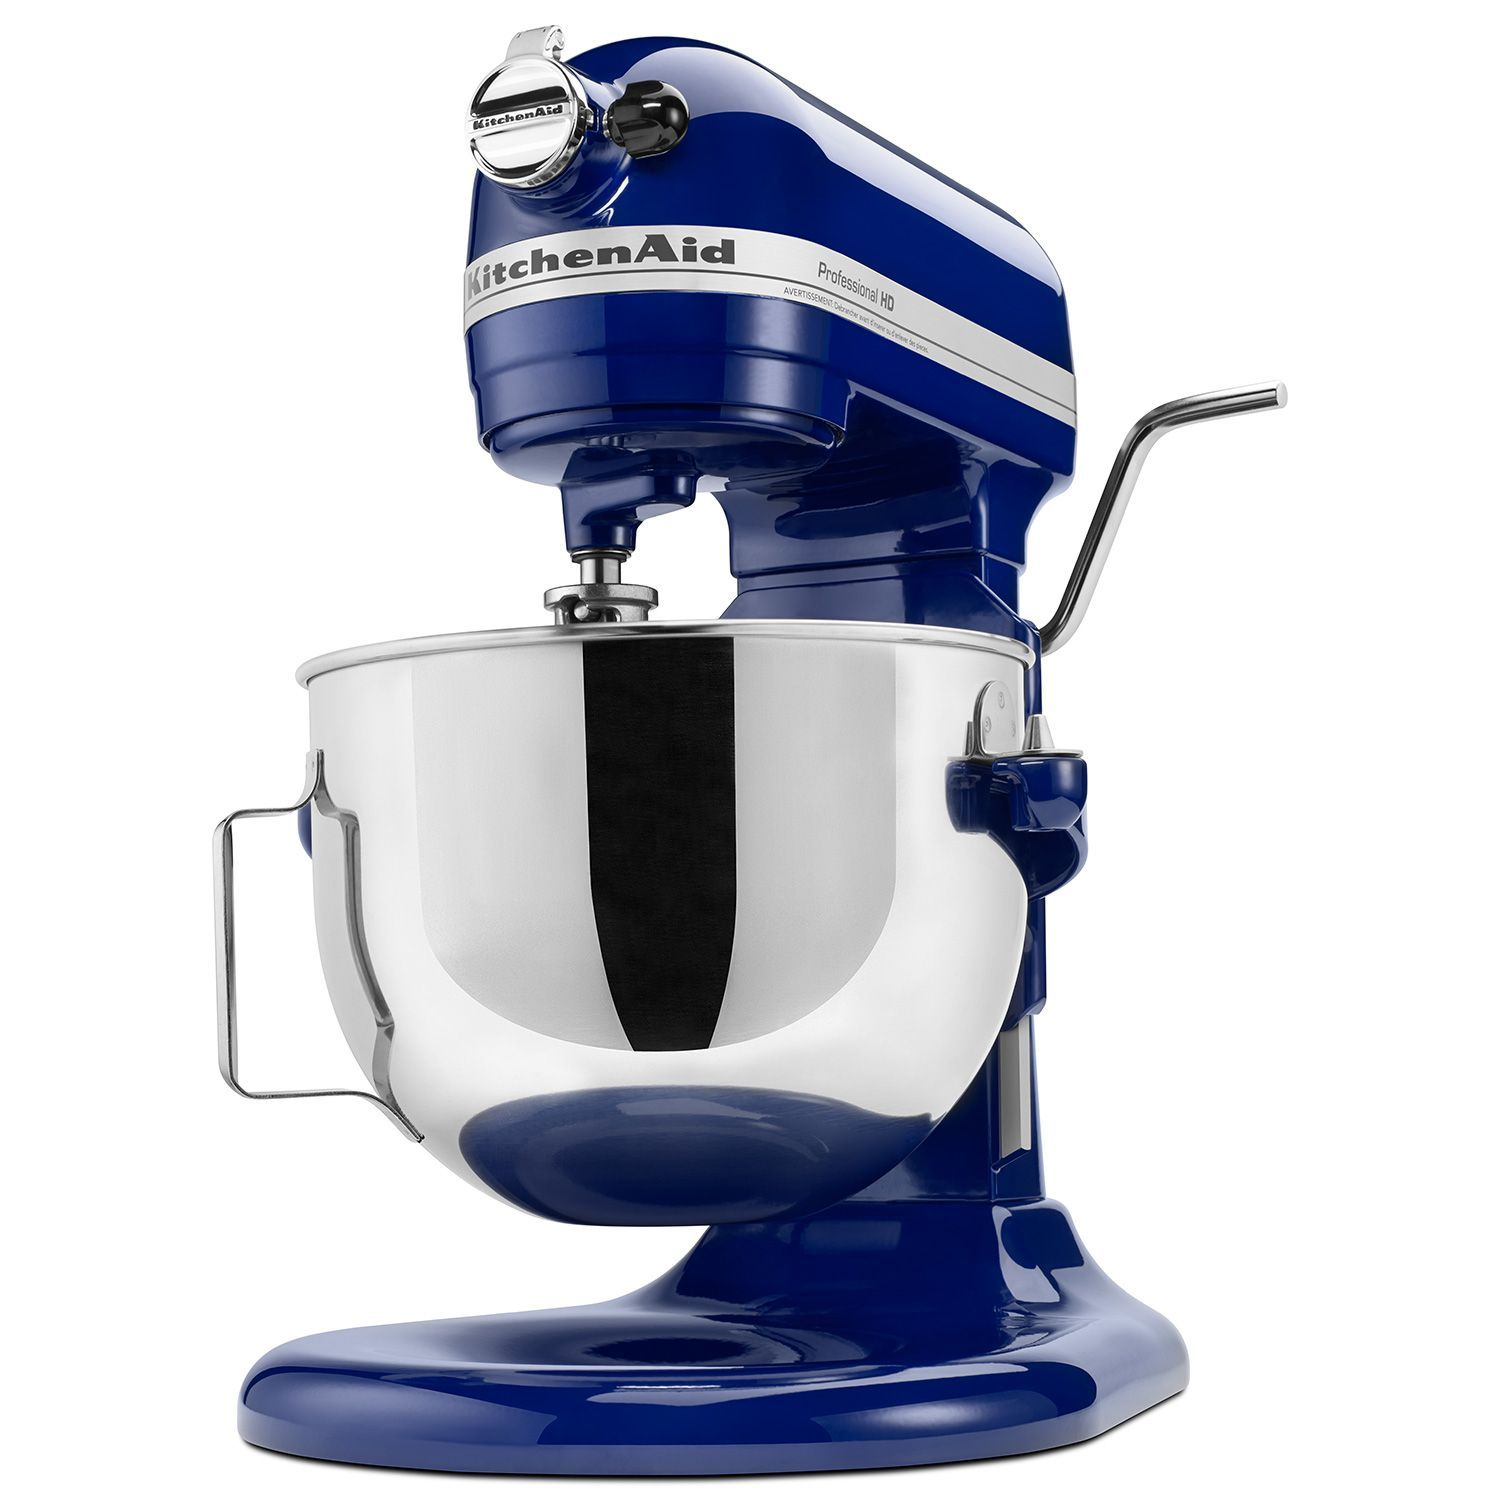 Kitchenaid professional hd stand mixer assorted color